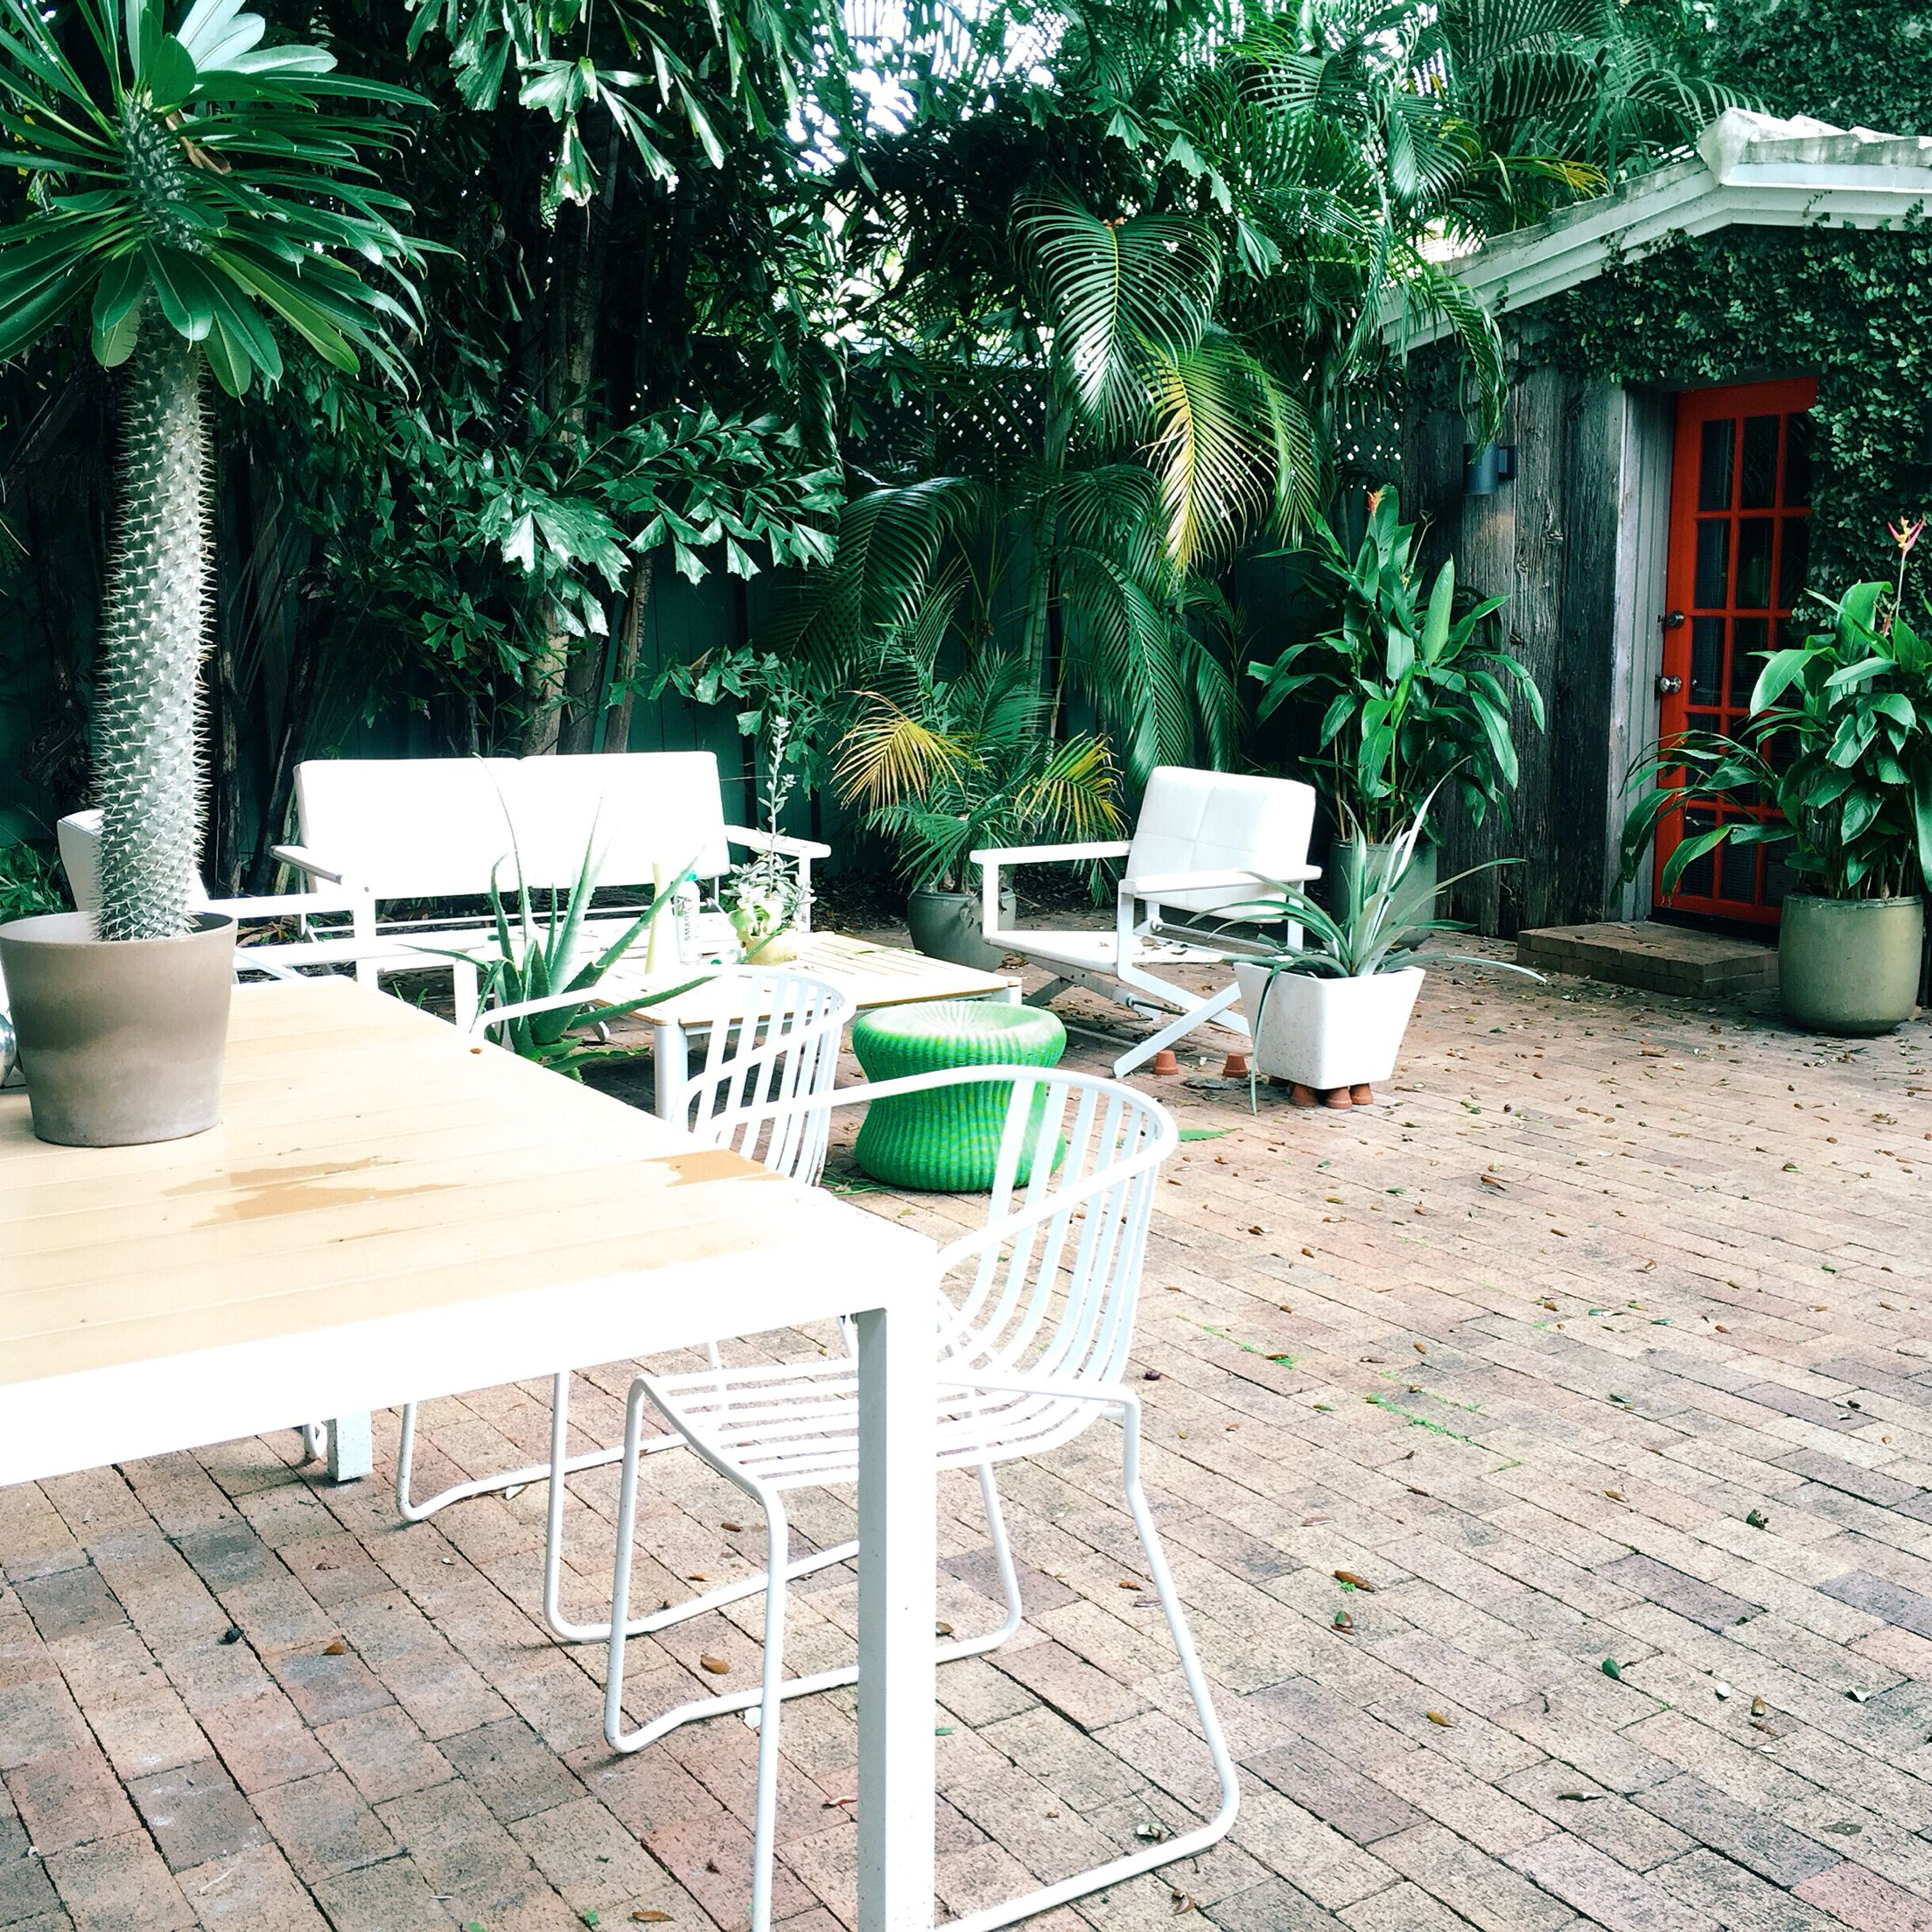 Morningside, Miami. The Most Gorgeous Airbnb Ever